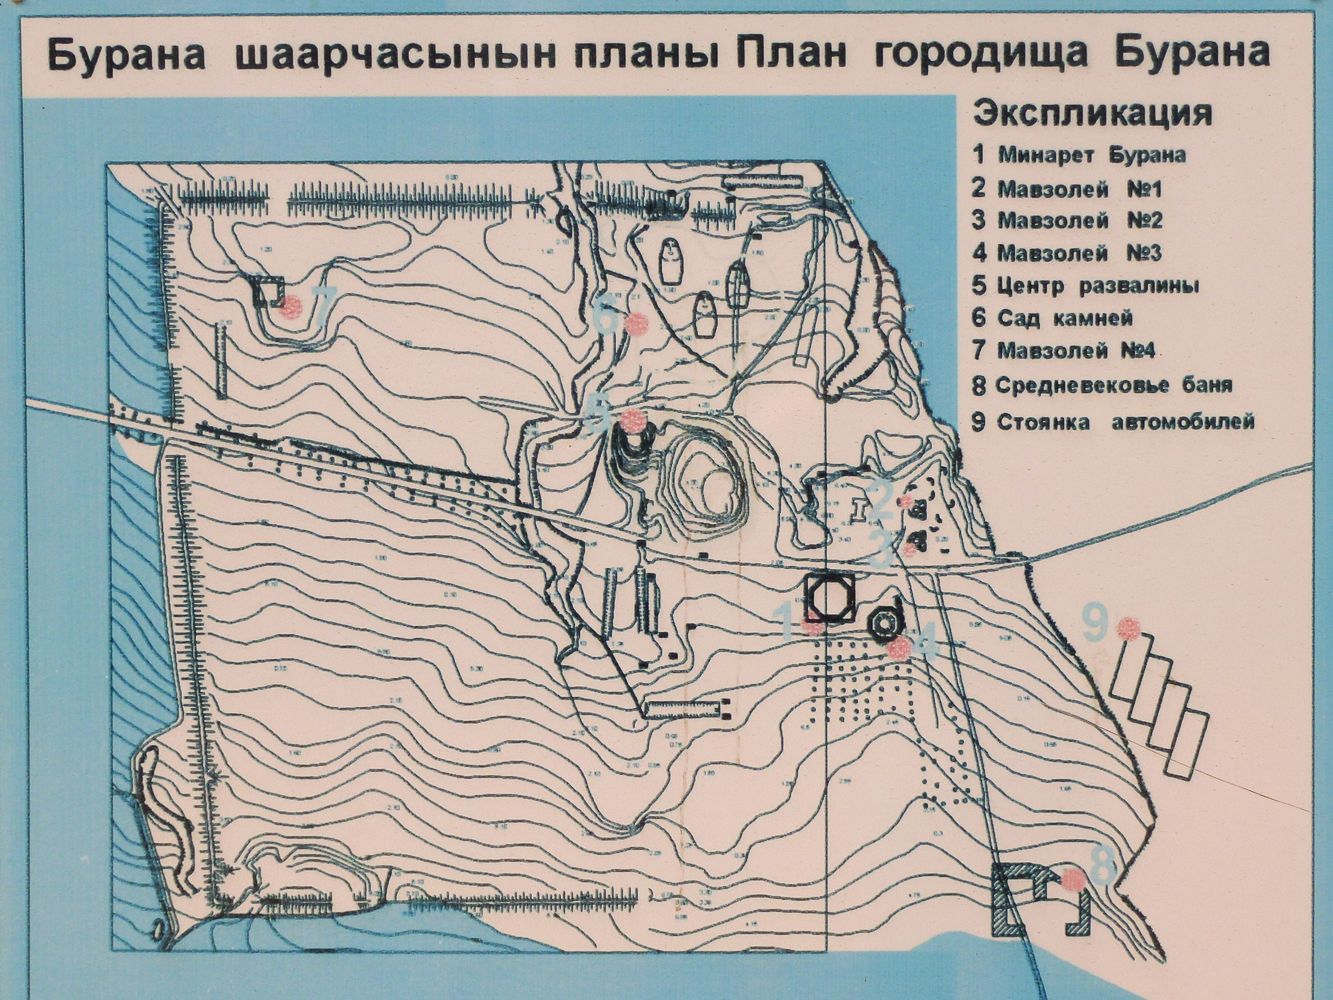 Burana arcehological complex map